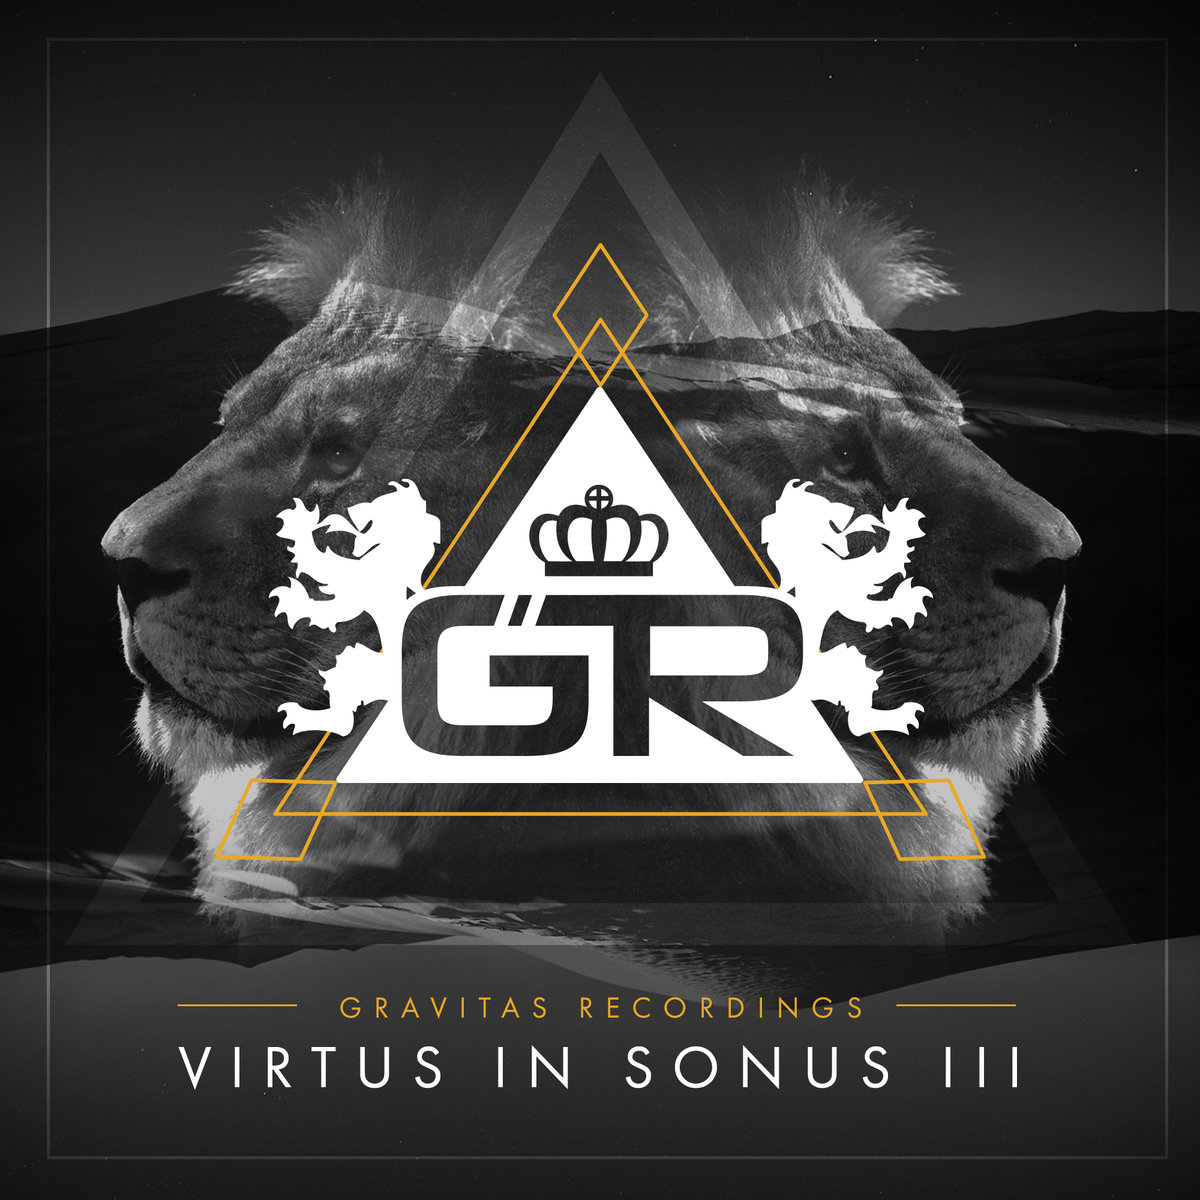 AMB - Ripple @ 'Virtus In Sonus III' album (Austin)